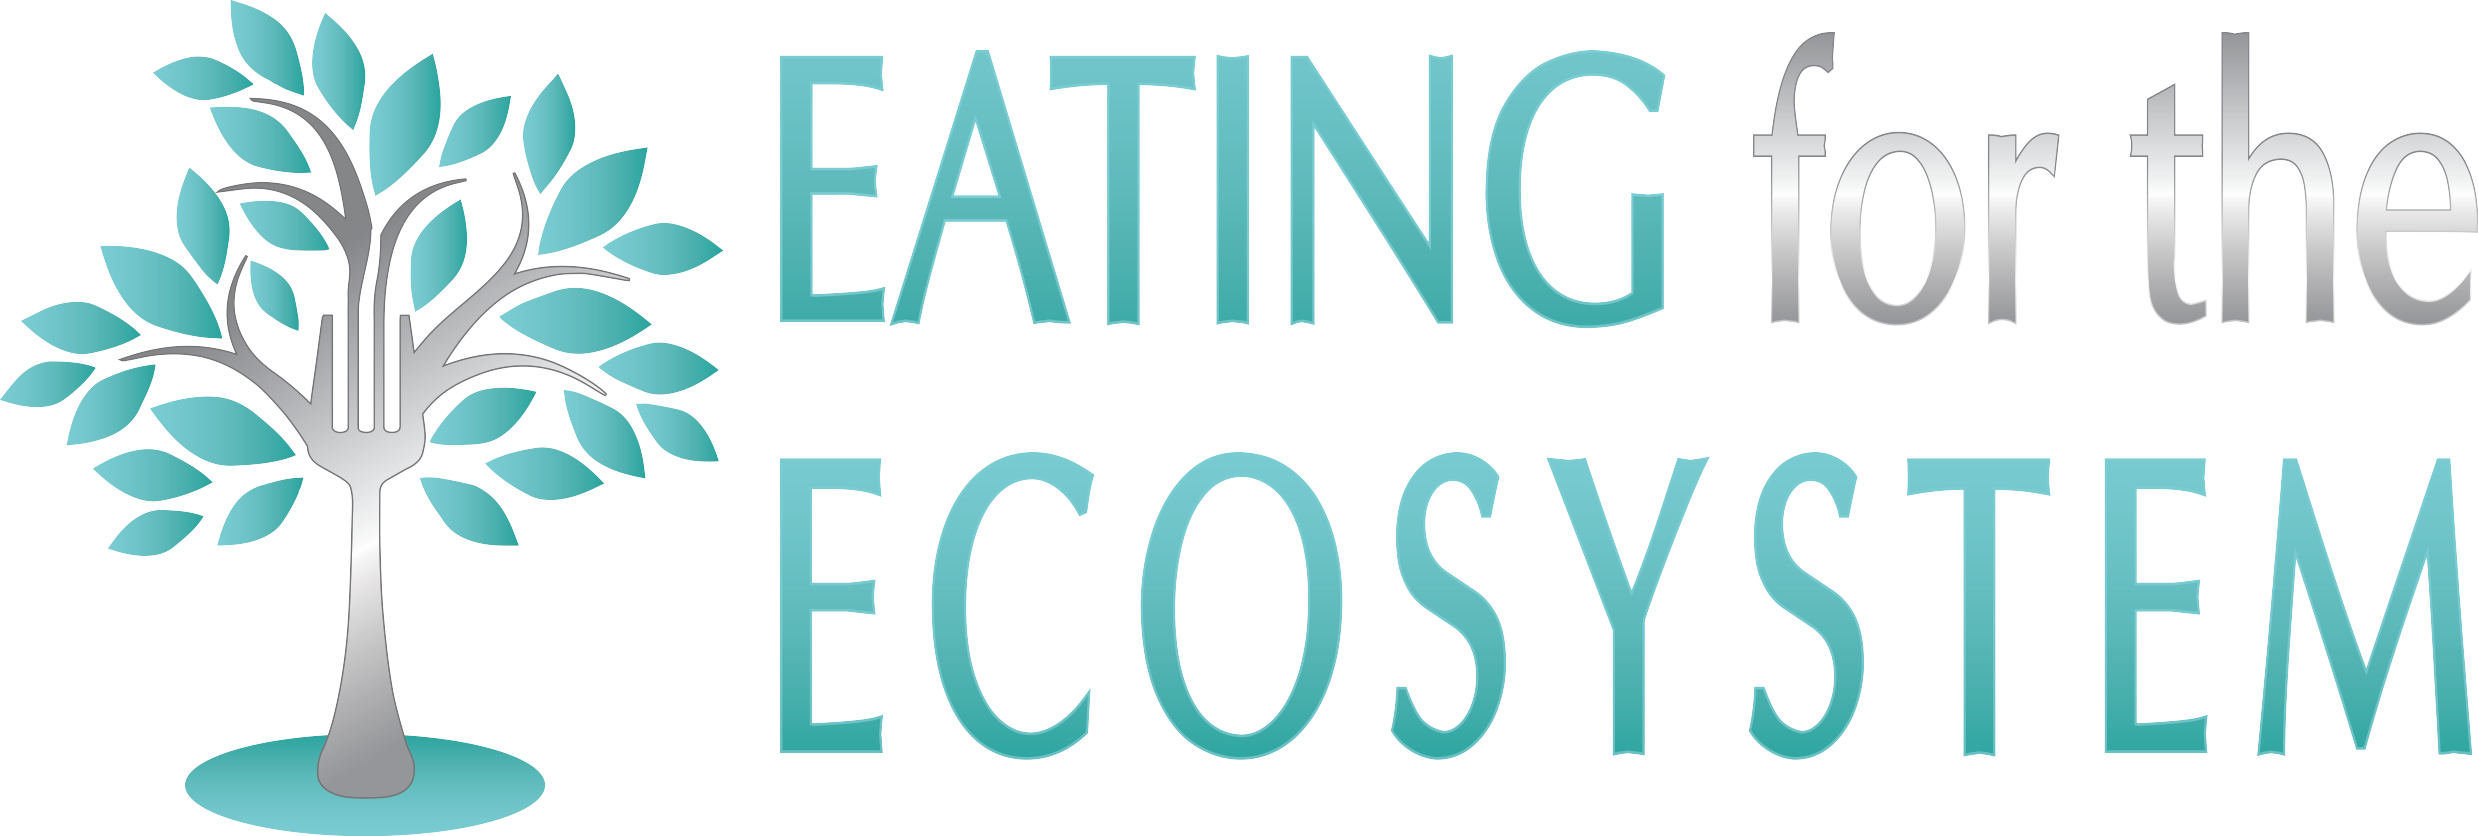 Eating for the Ecosystem logo